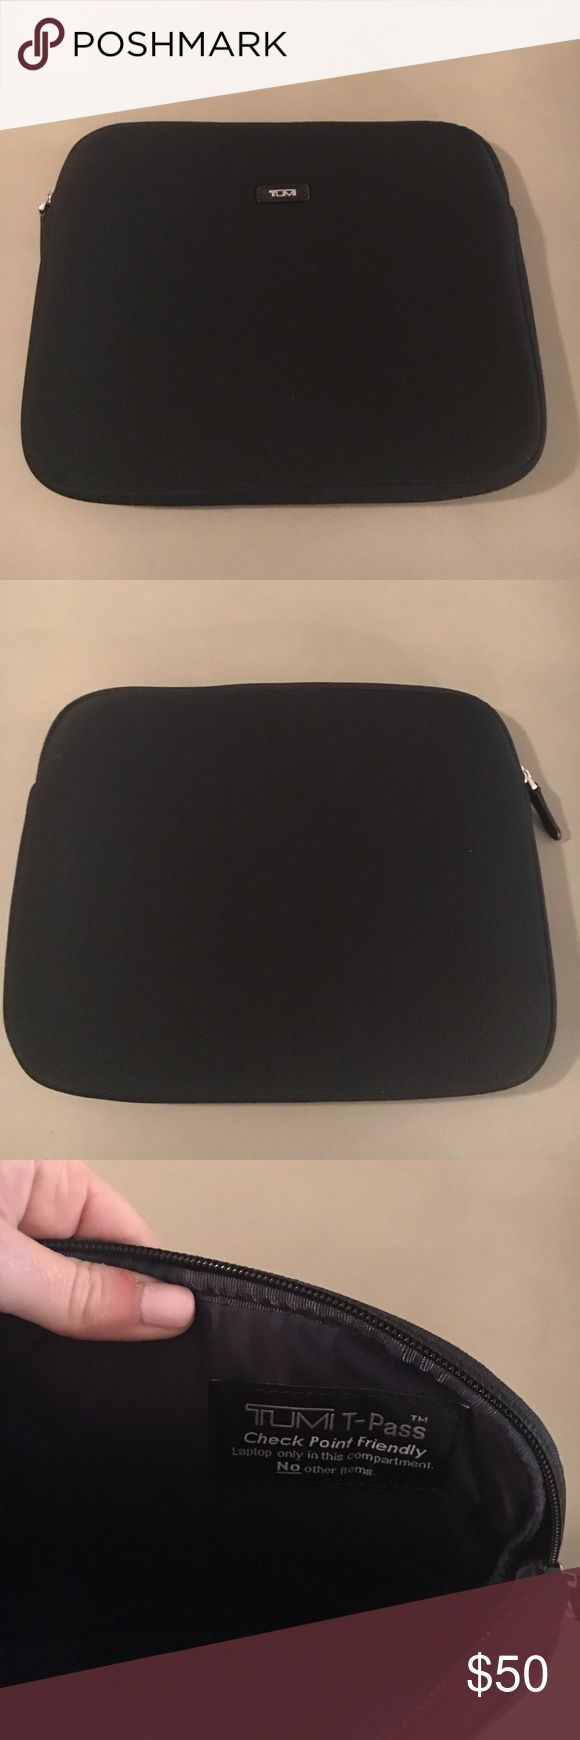 "Tumi Laptop case Black Tumi Labtop case never used!!! Made with neoprene - this is he perfect lap top sleeve. Measures 13"" long x 10"" high x 1"" deep. Tumi Accessories Laptop Cases"